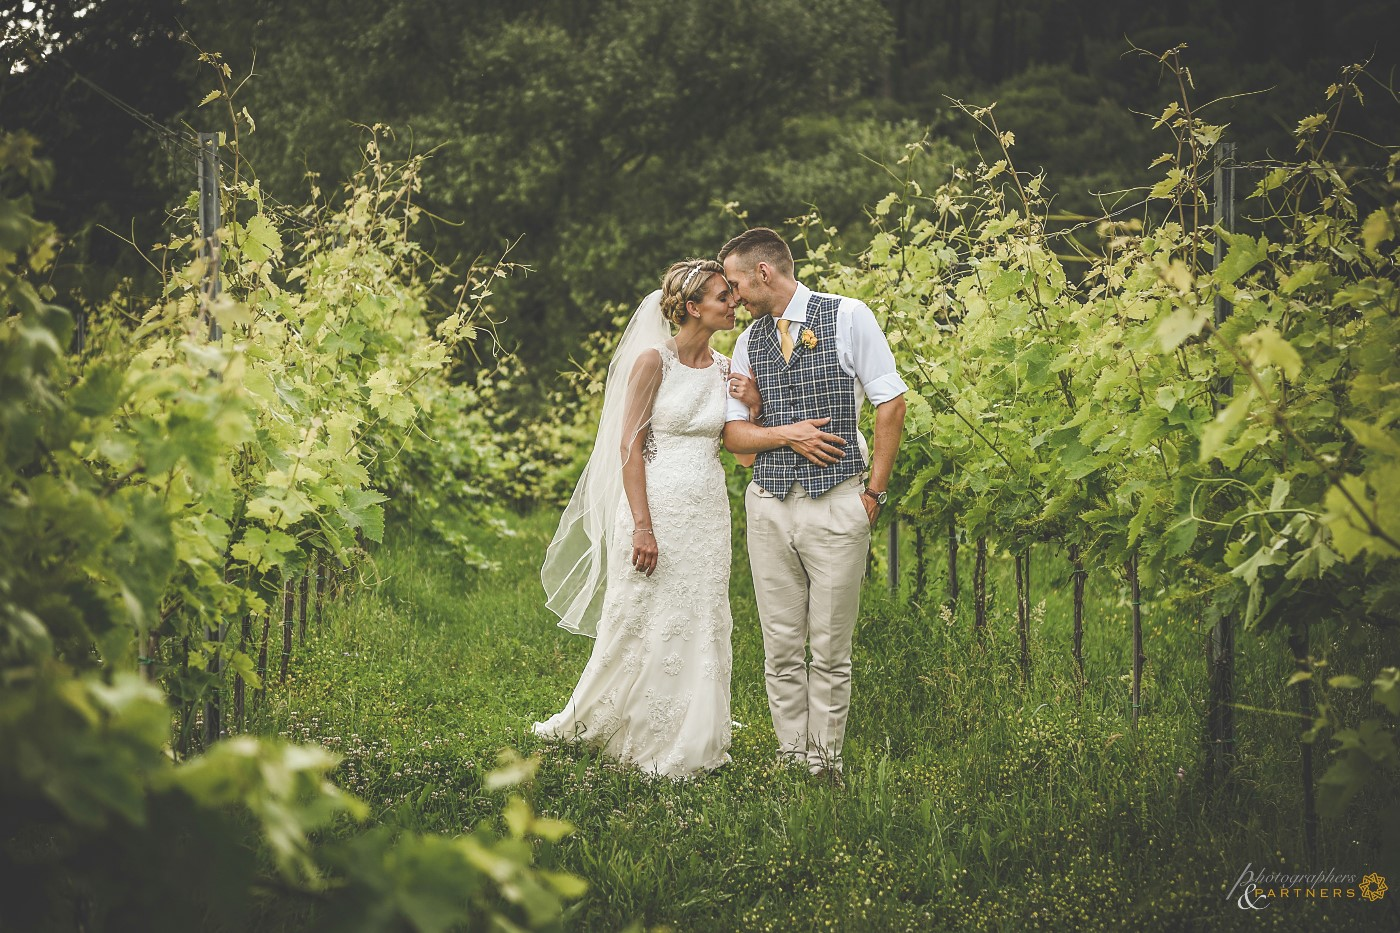 🍃 Romantic moment among the vineyards 🍃